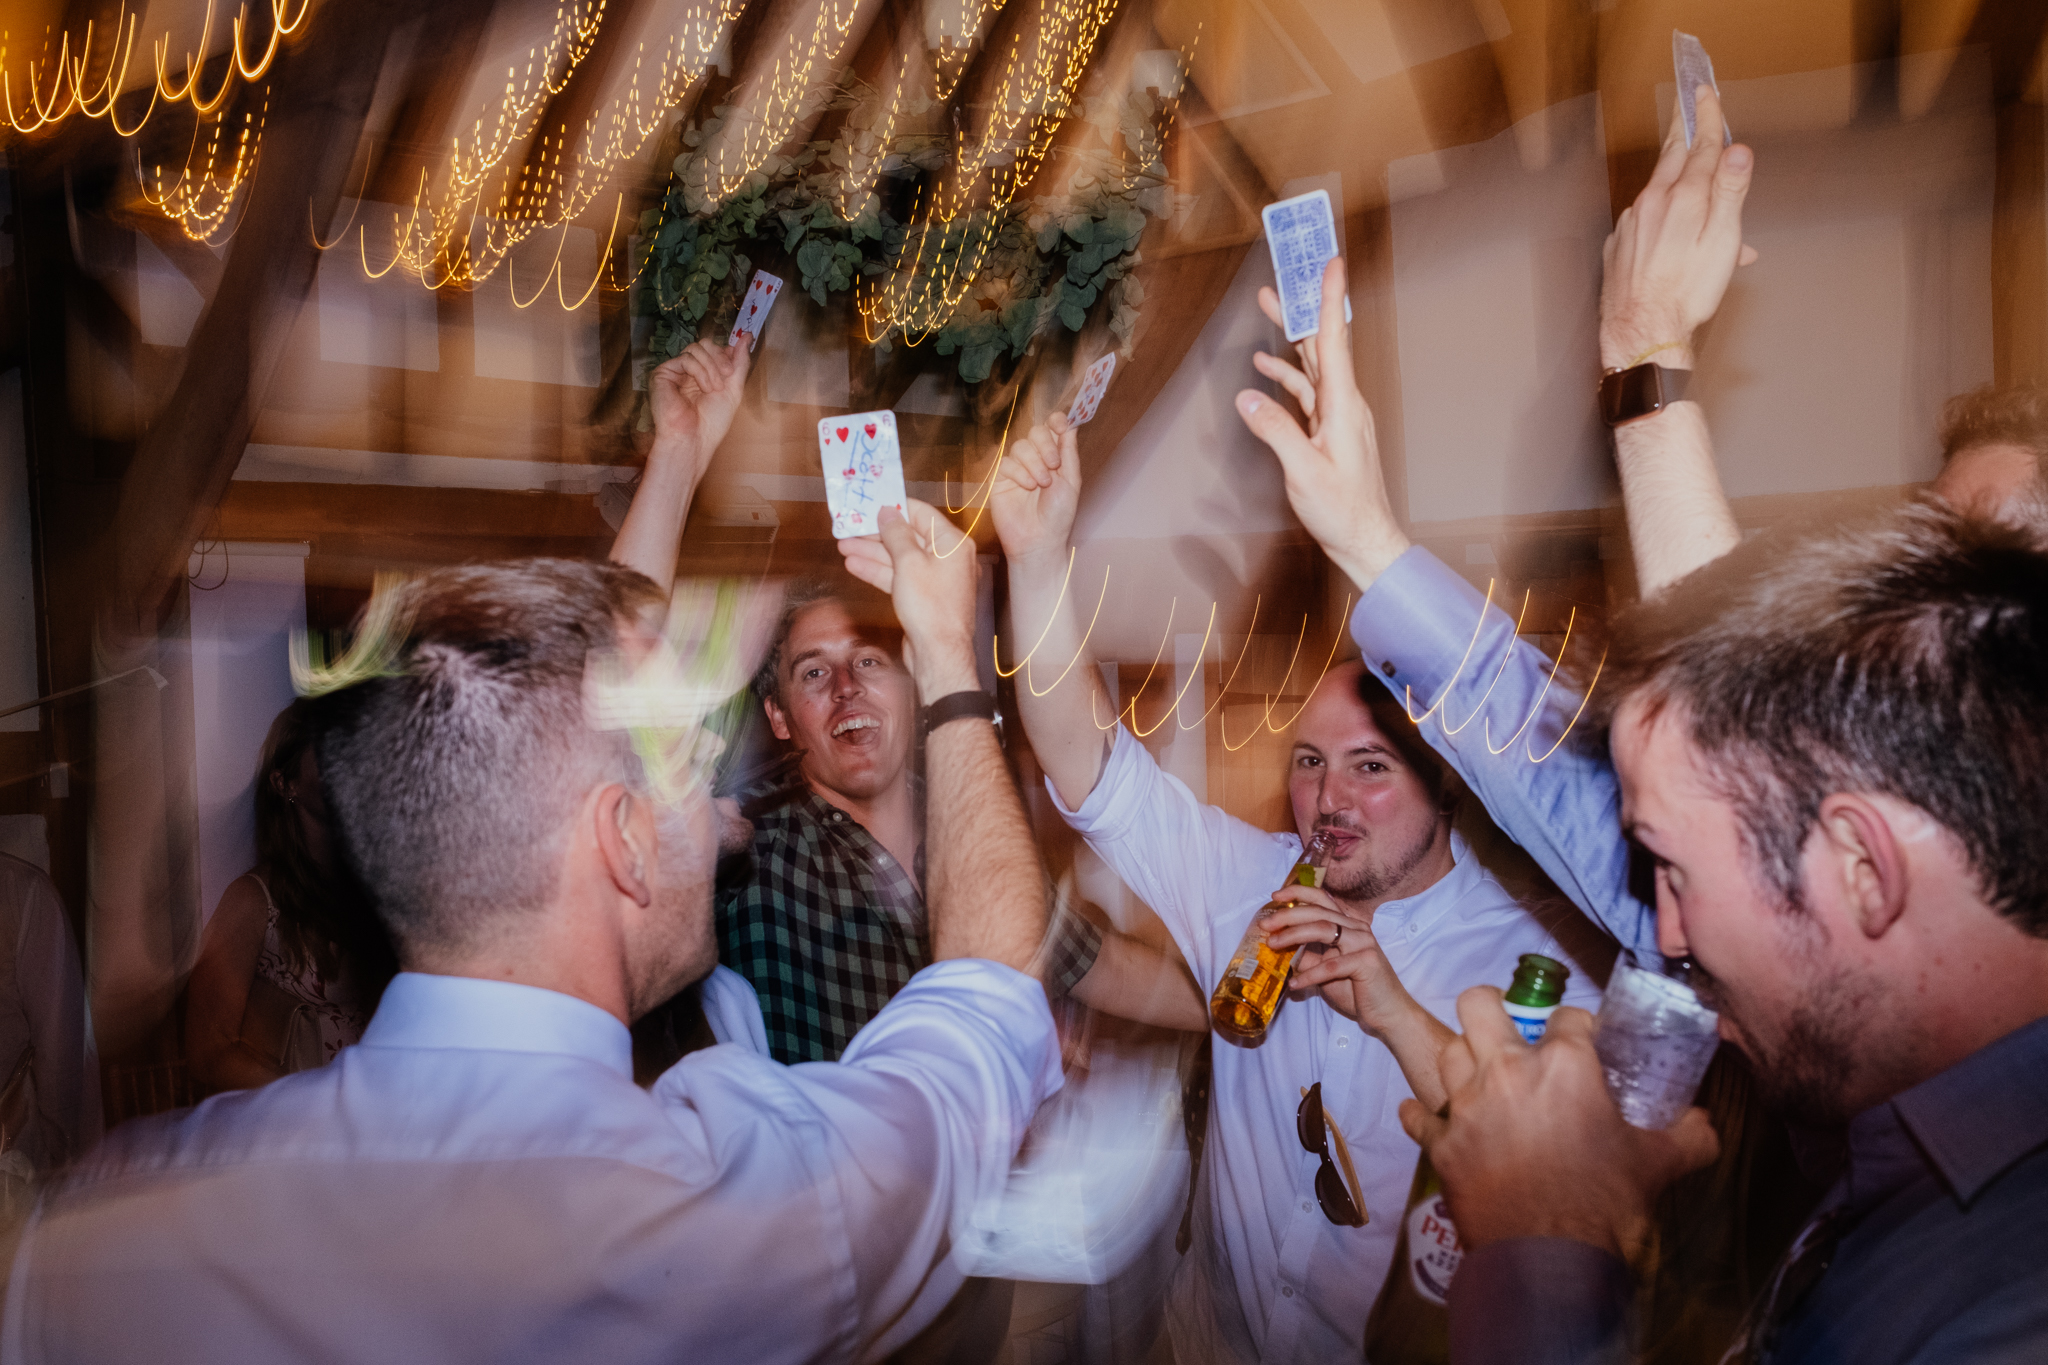 Groom and groomsmen drink beer and hold up cards